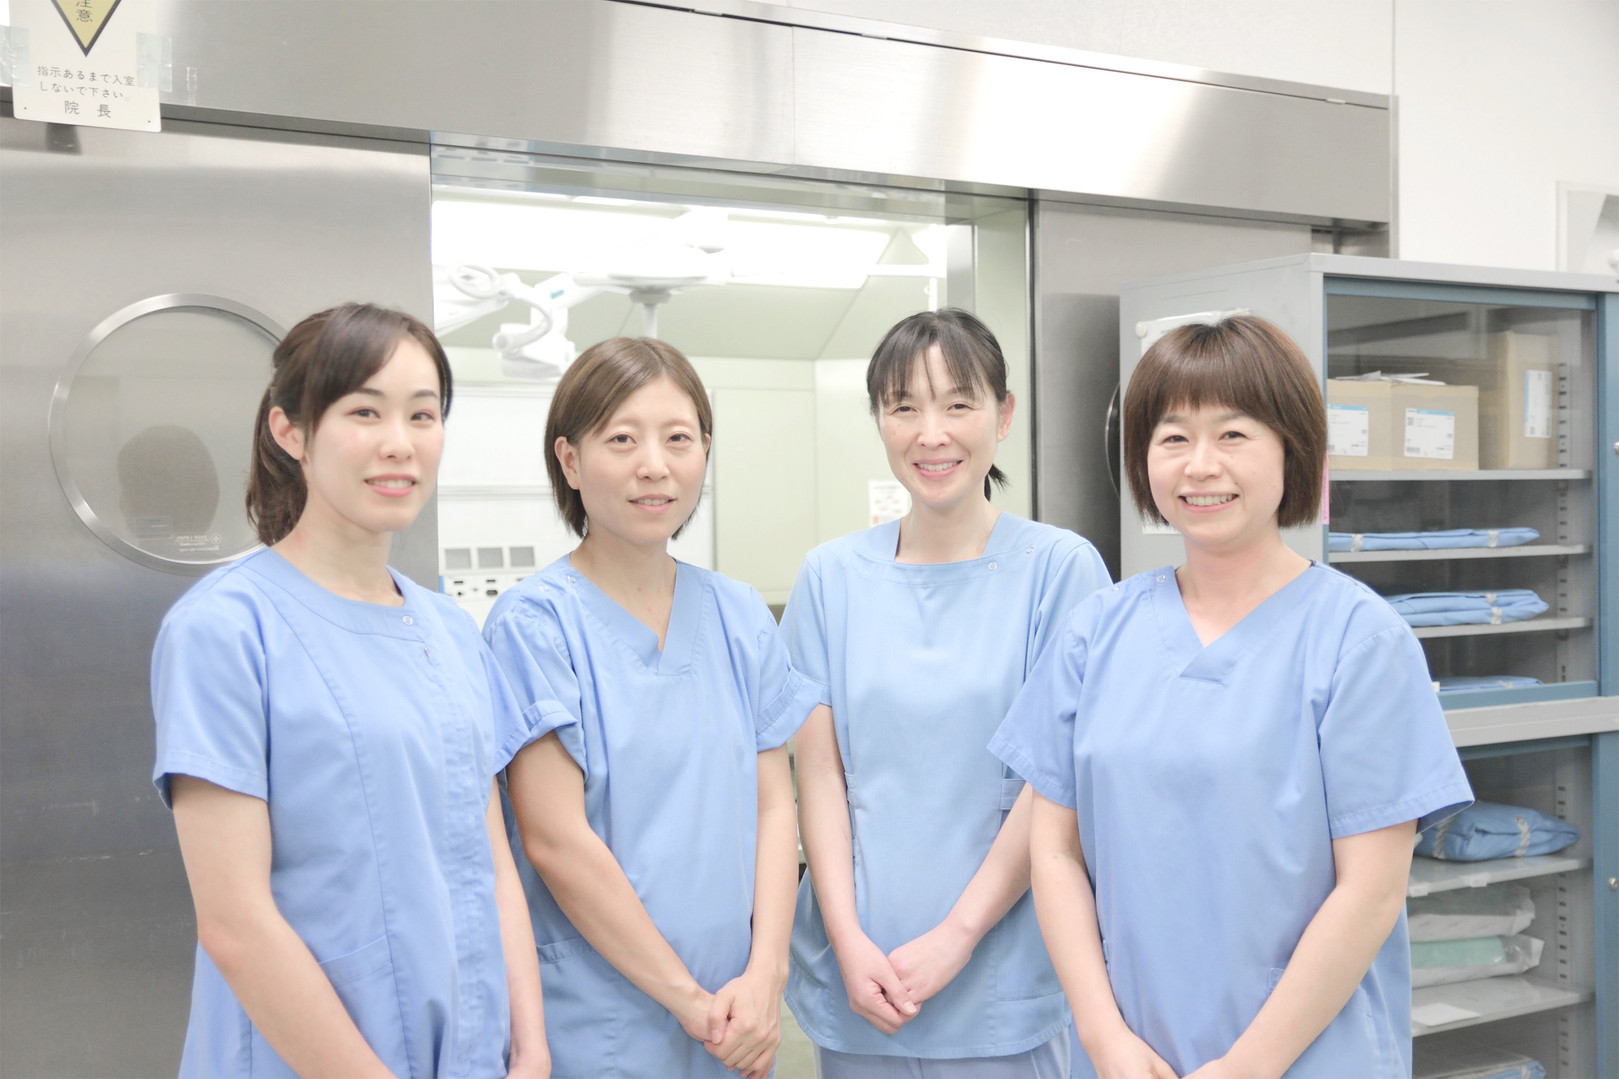 Operating room staff